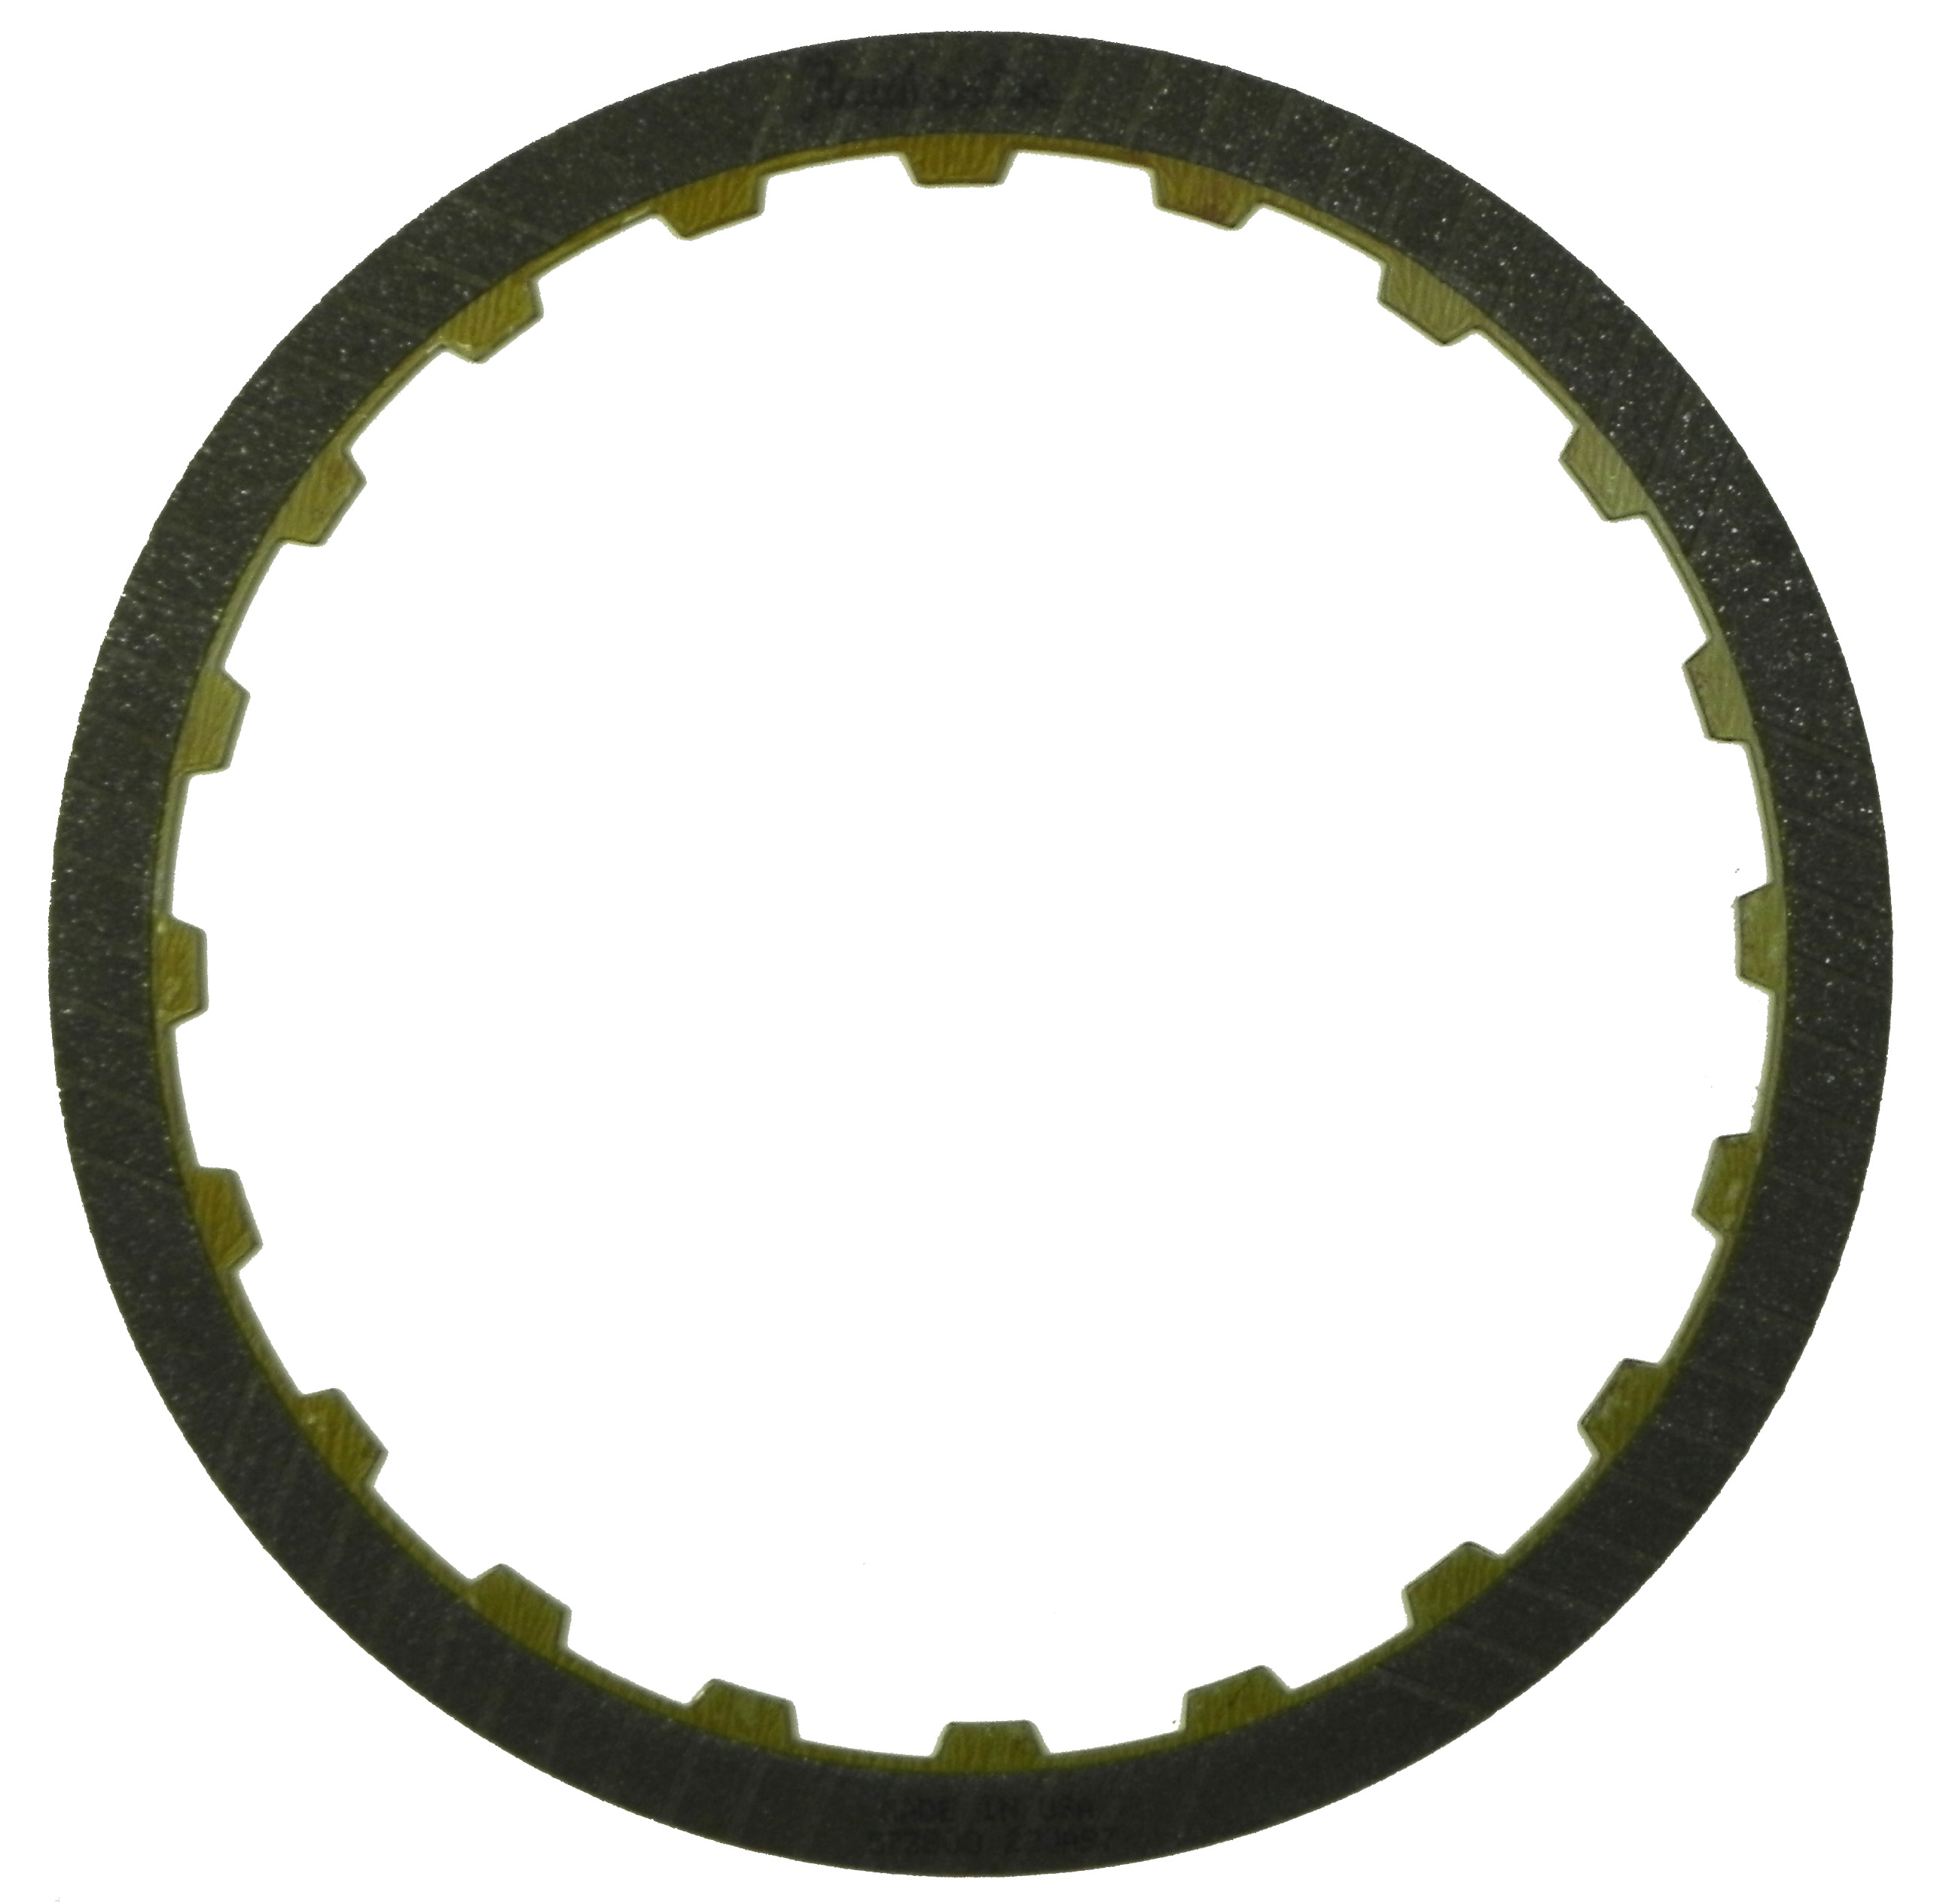 R573800 | 1989-2002 Friction Clutch Plate Graphitic Overrun Graphitic RE4R03A